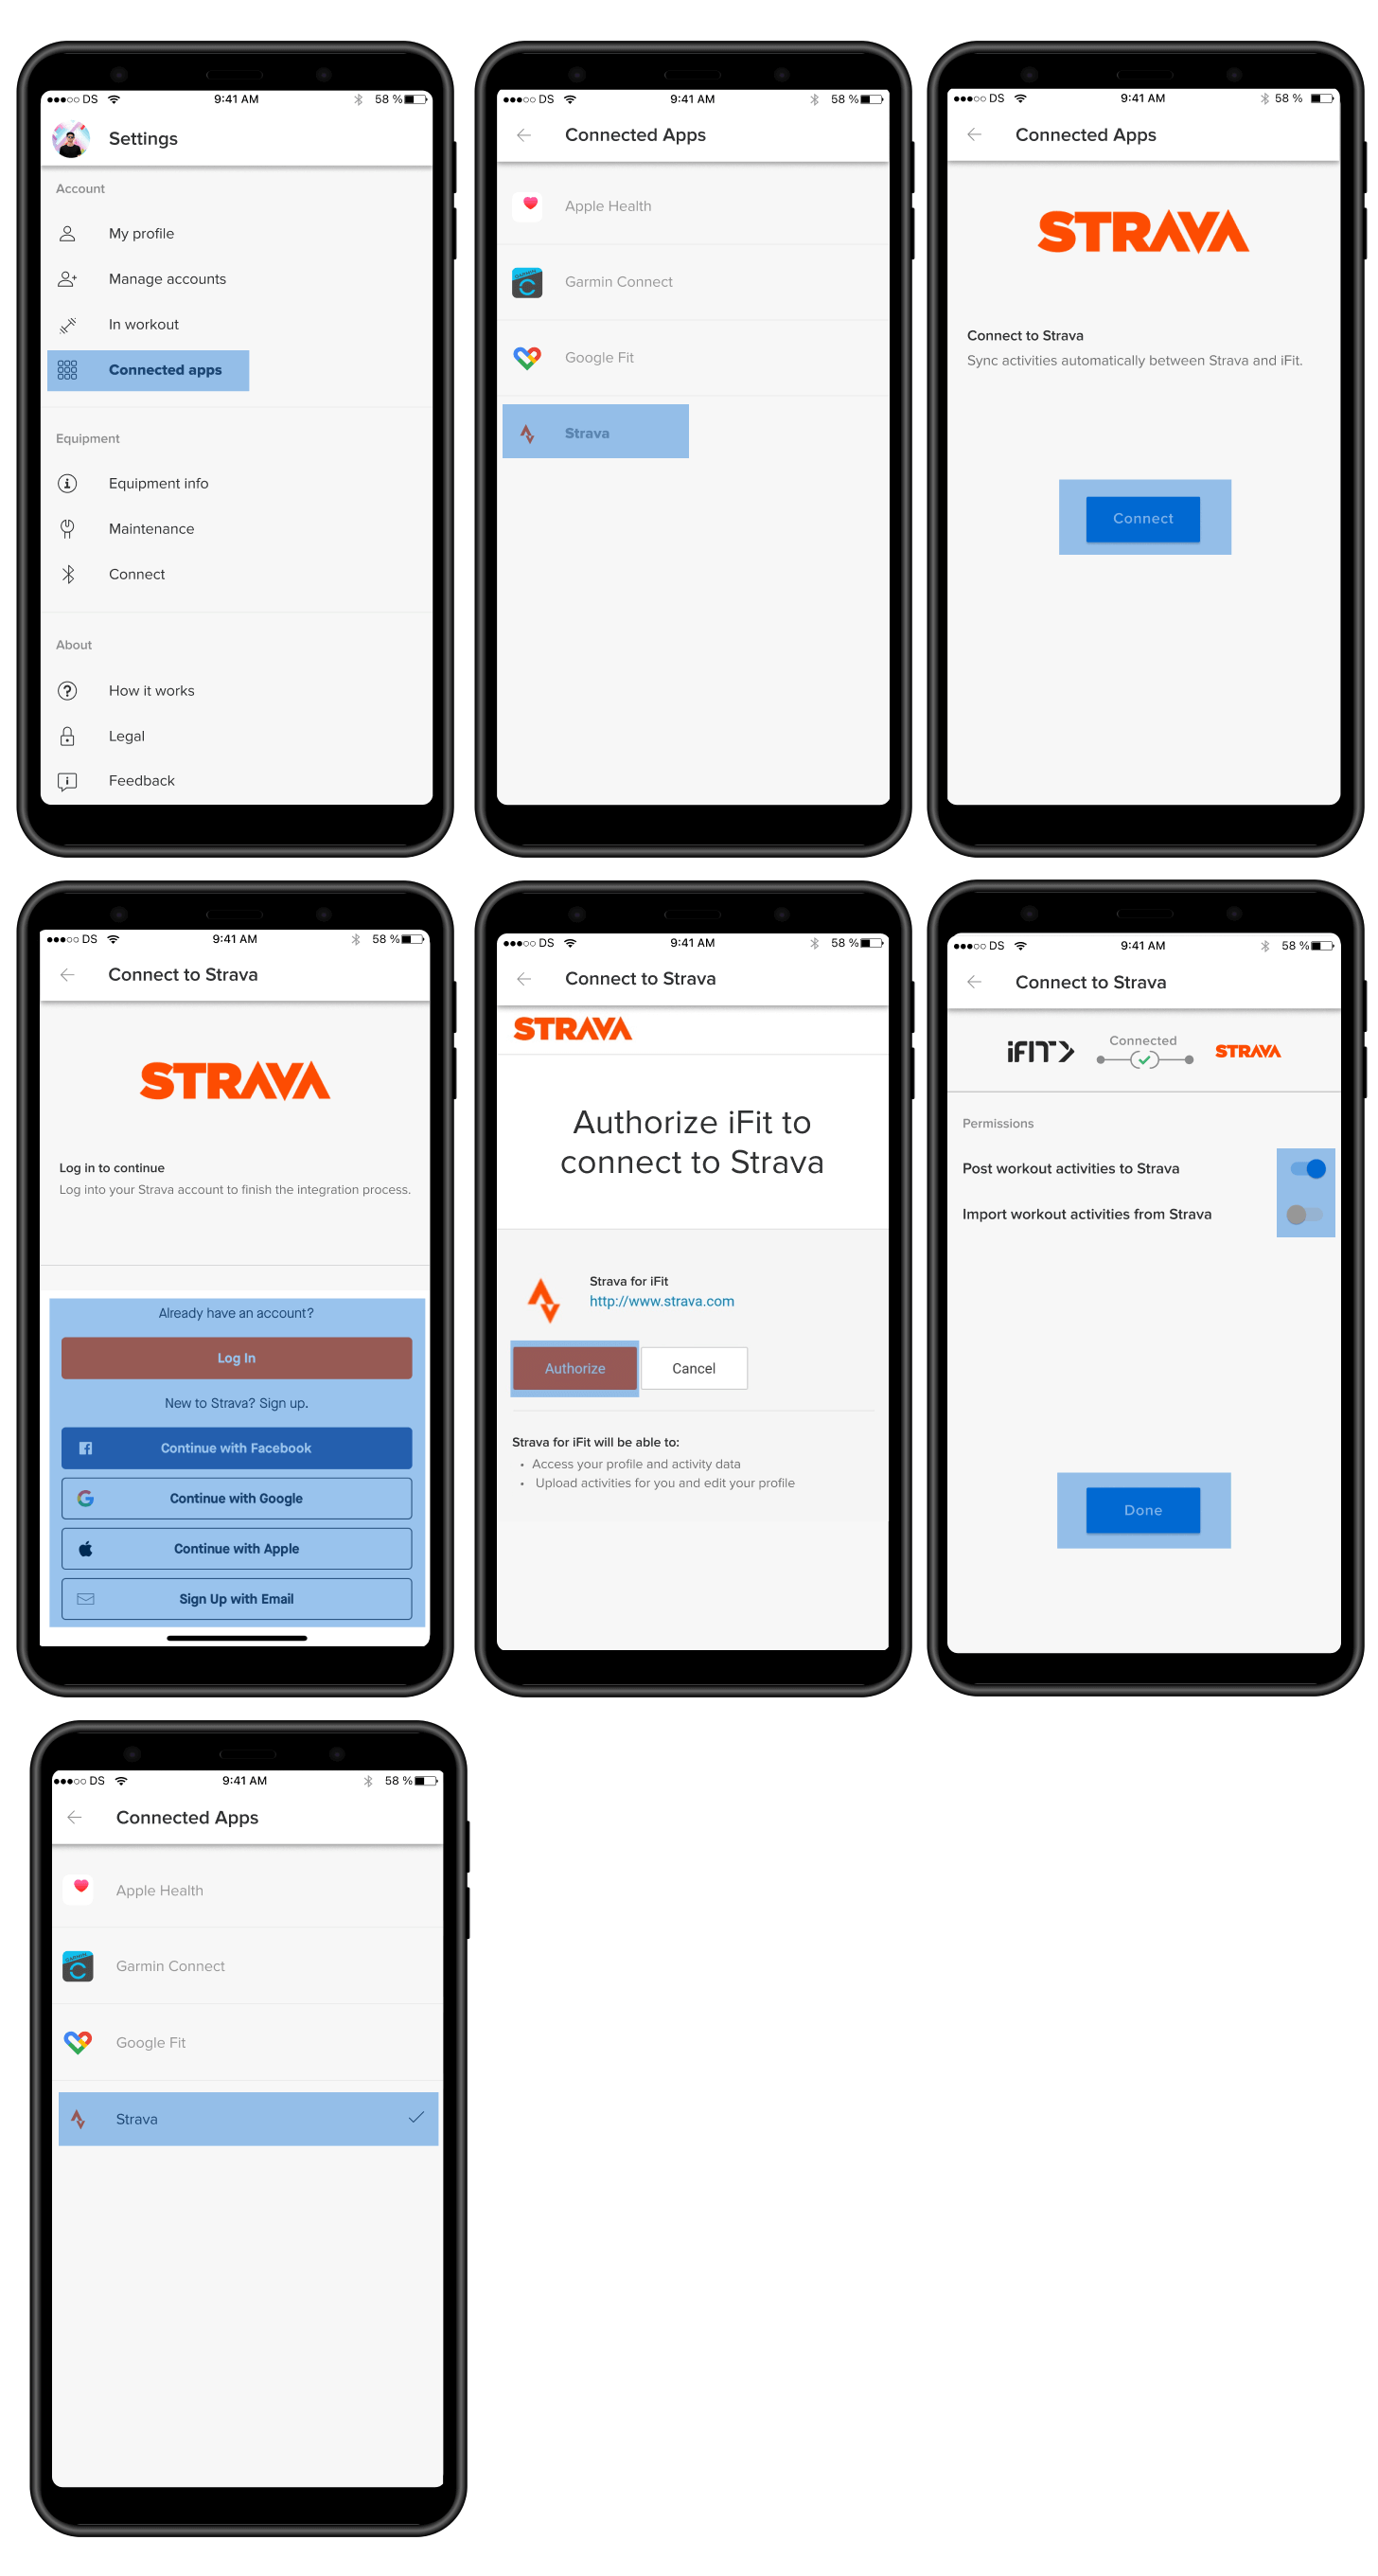 How to connect your iFIT and Strava accounts